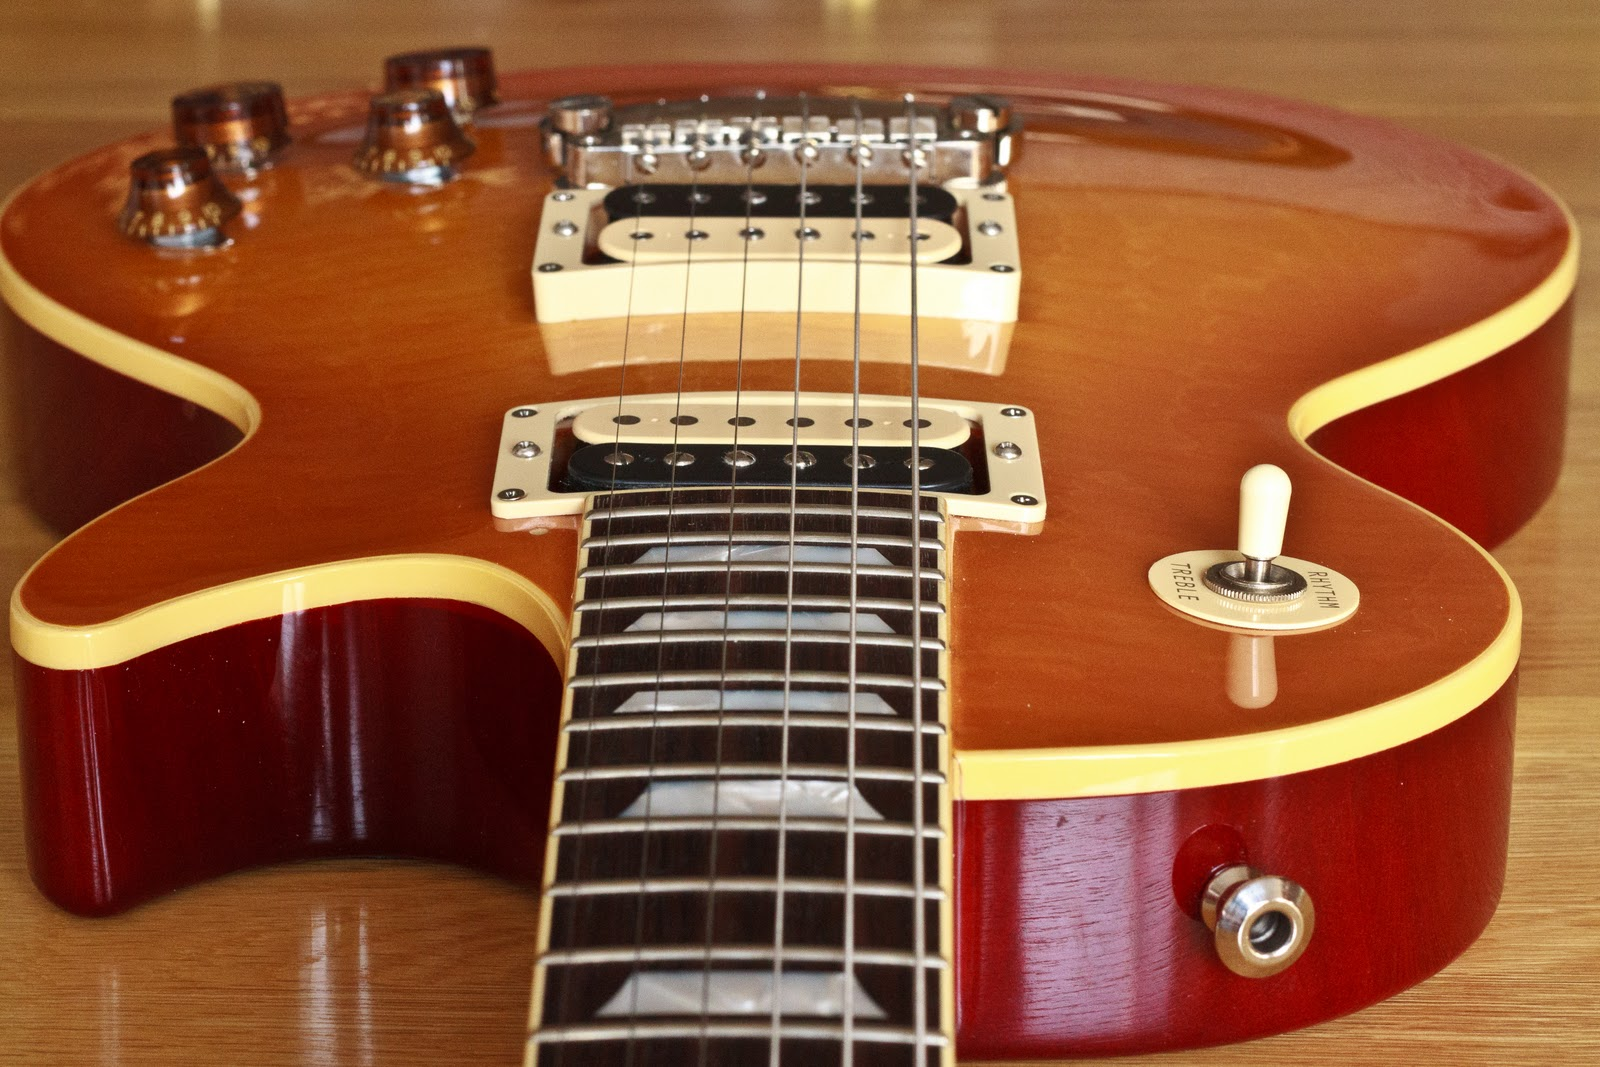 Epiphone Les Paul Coil Tap Wiring Diagram Marine Stereo Chris Poldervaart Photography 2007